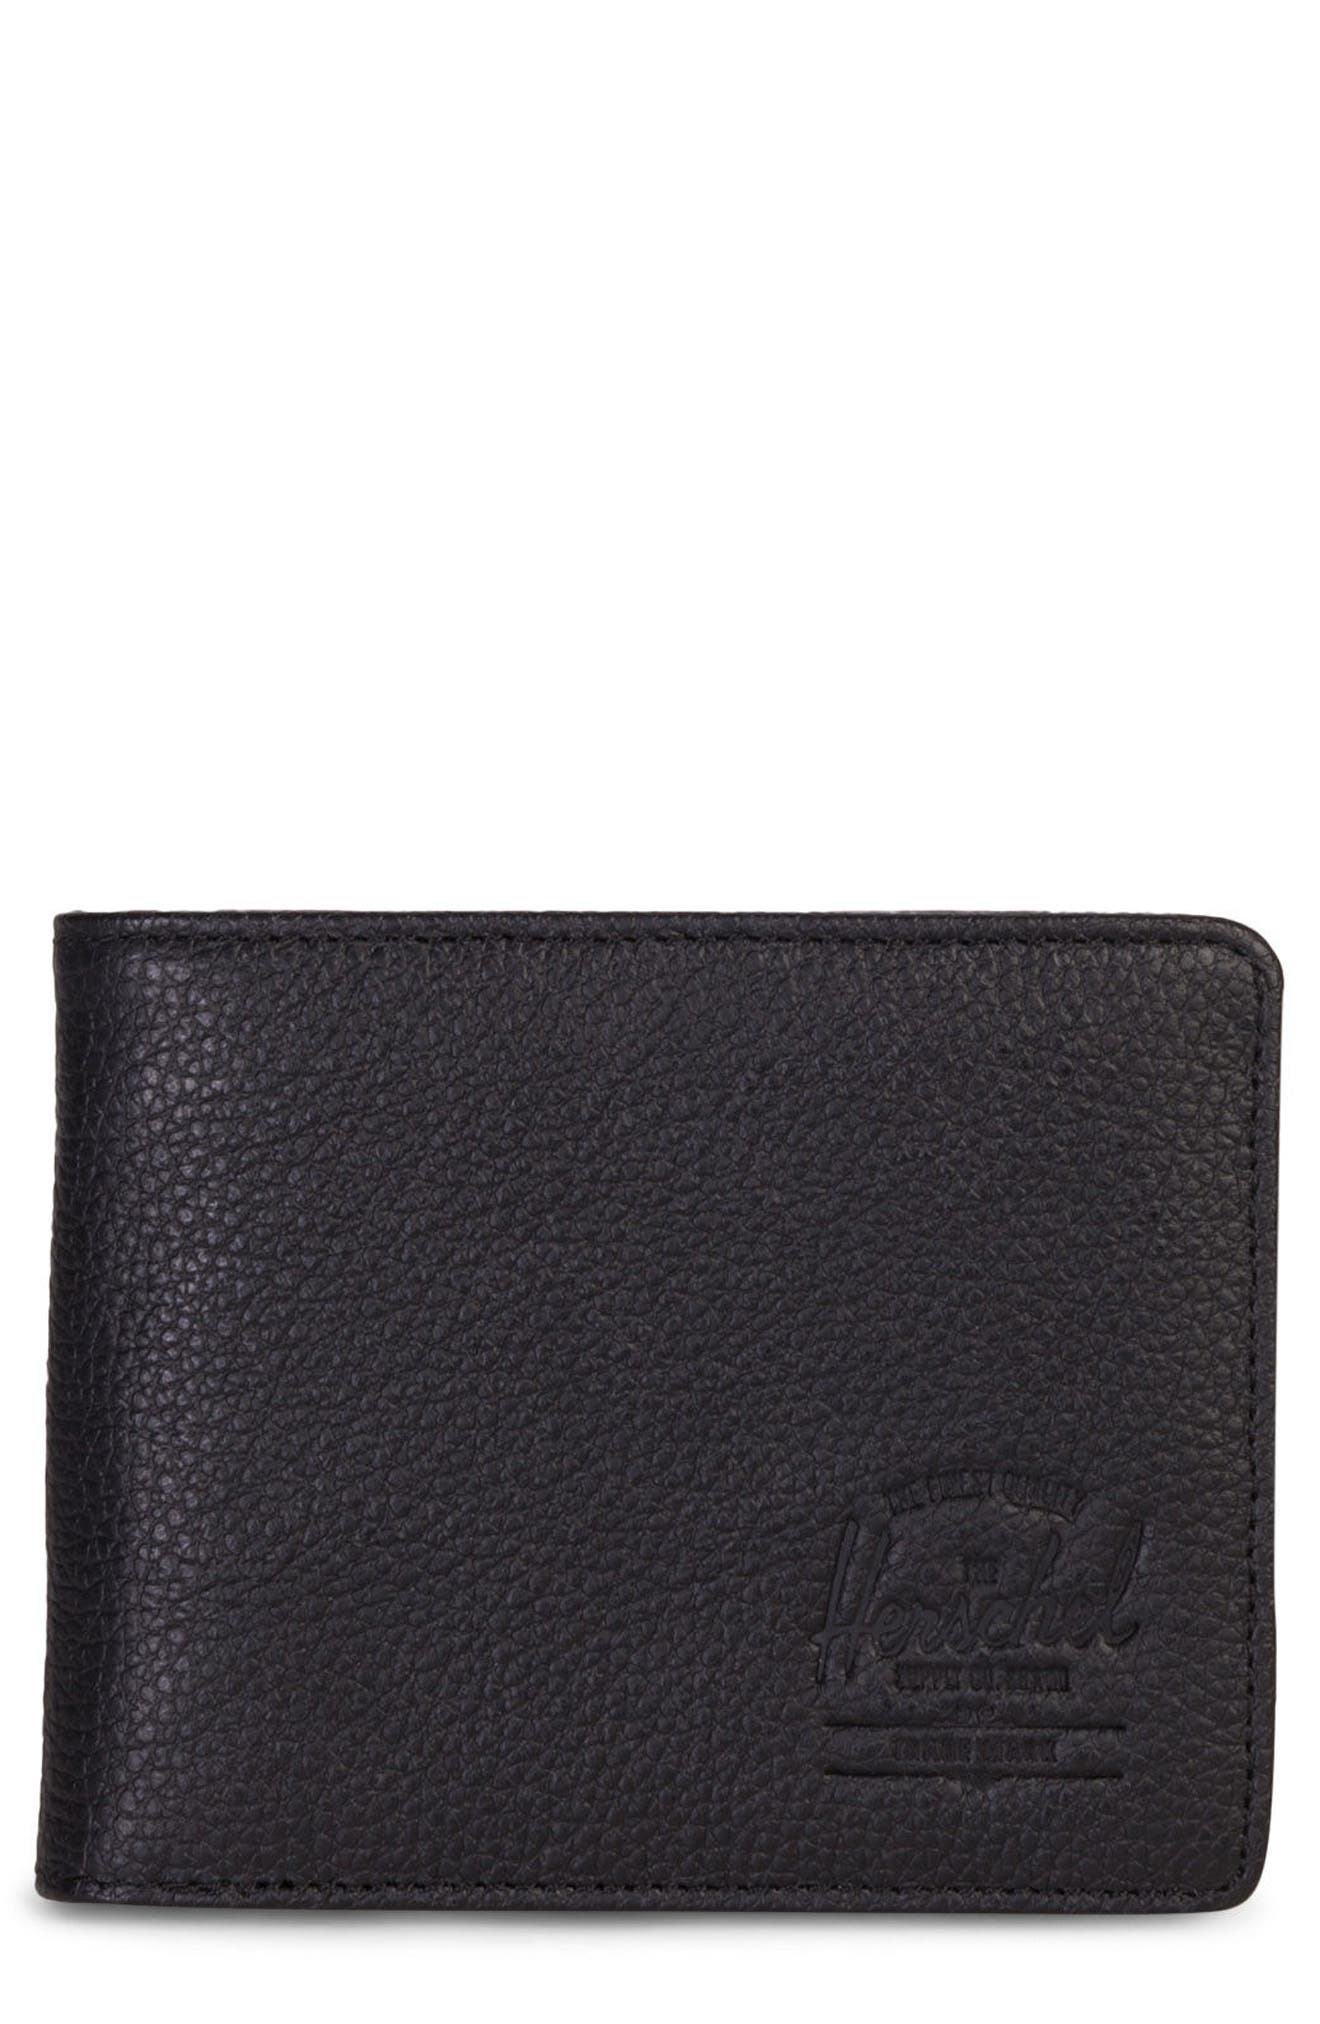 Hank Leather Wallet,                             Main thumbnail 1, color,                             Black Pebbled Leather